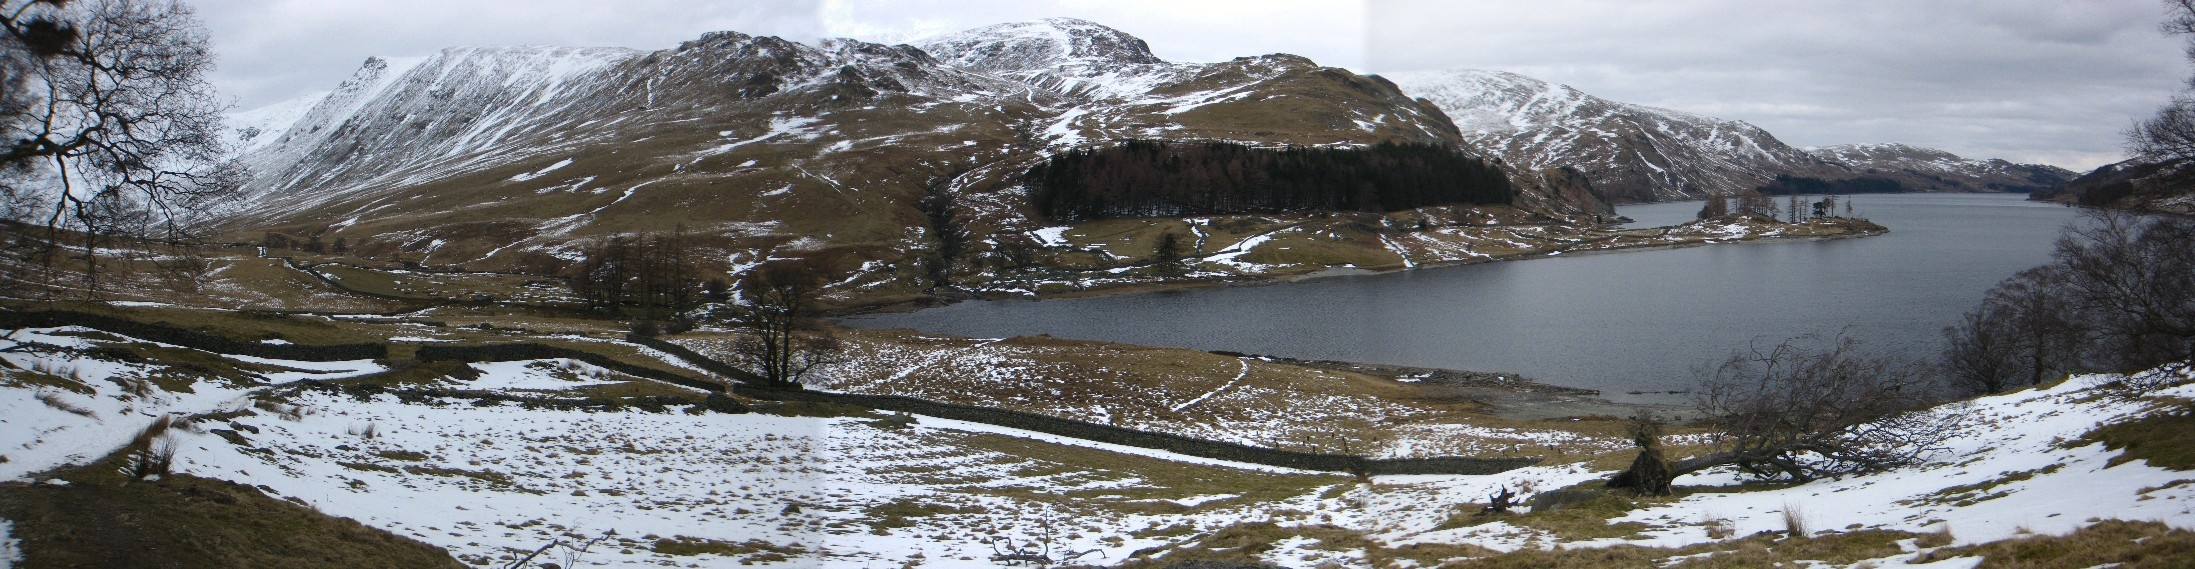 Panorama of Kidsty Pike and the view down Haweswater